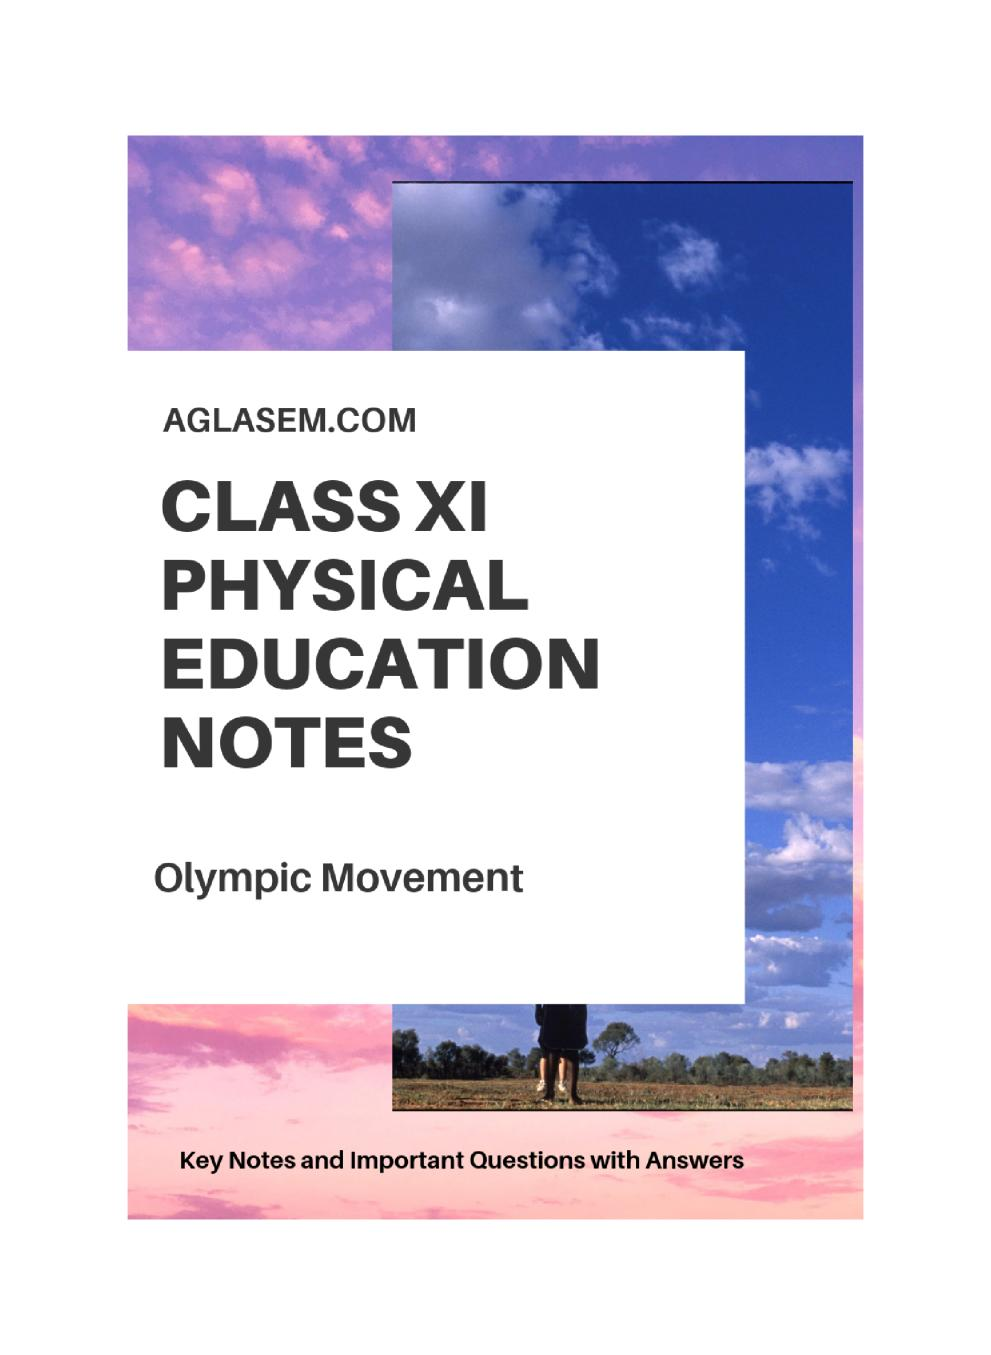 Class 11 Physical Education Notes For Olympic Movement